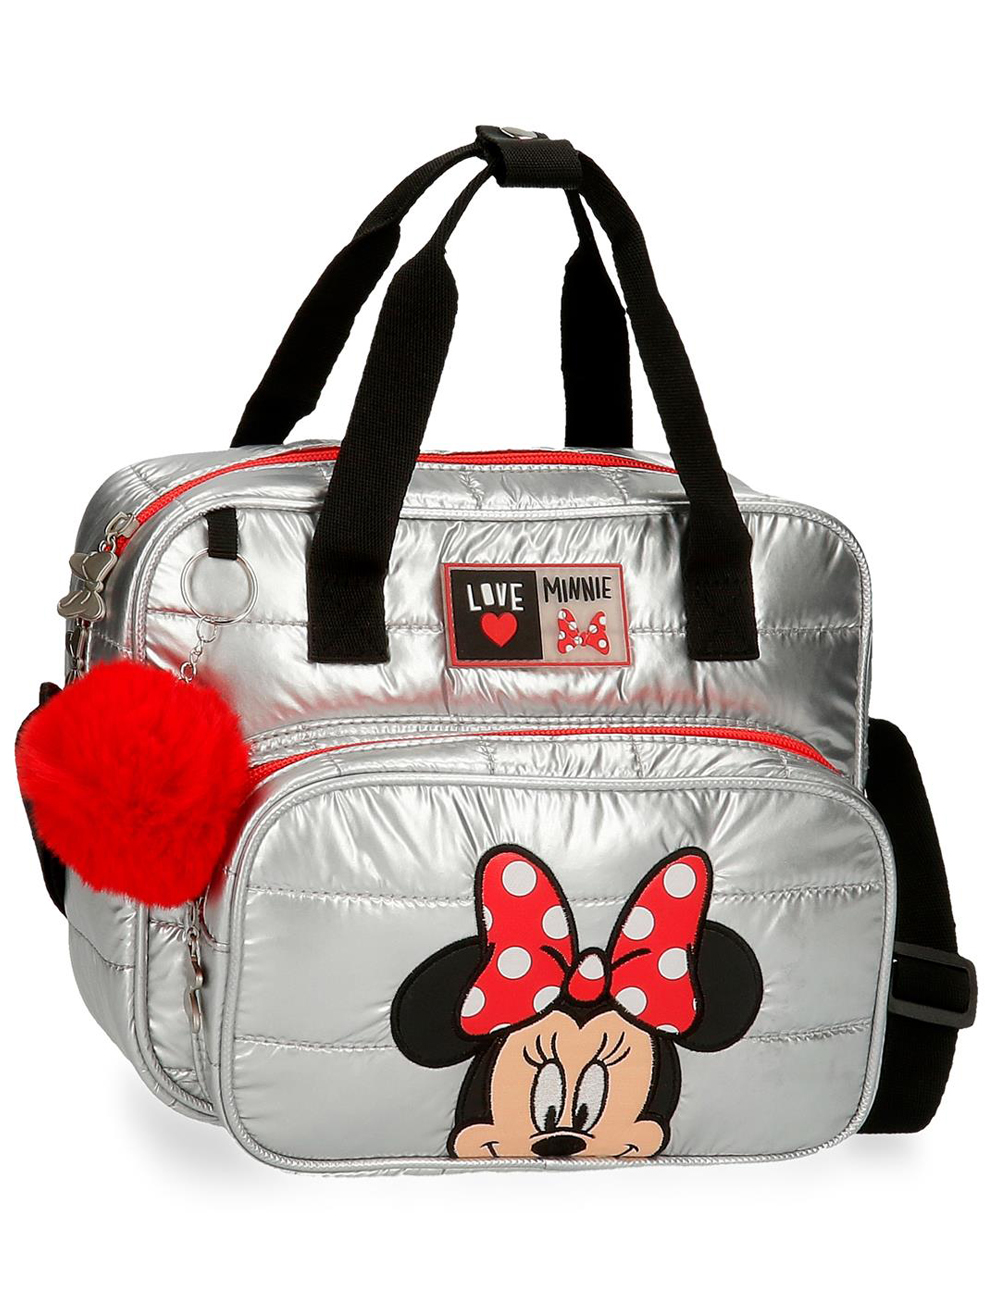 2164521 Neceser Adaptable Minnie My Pretty Bow